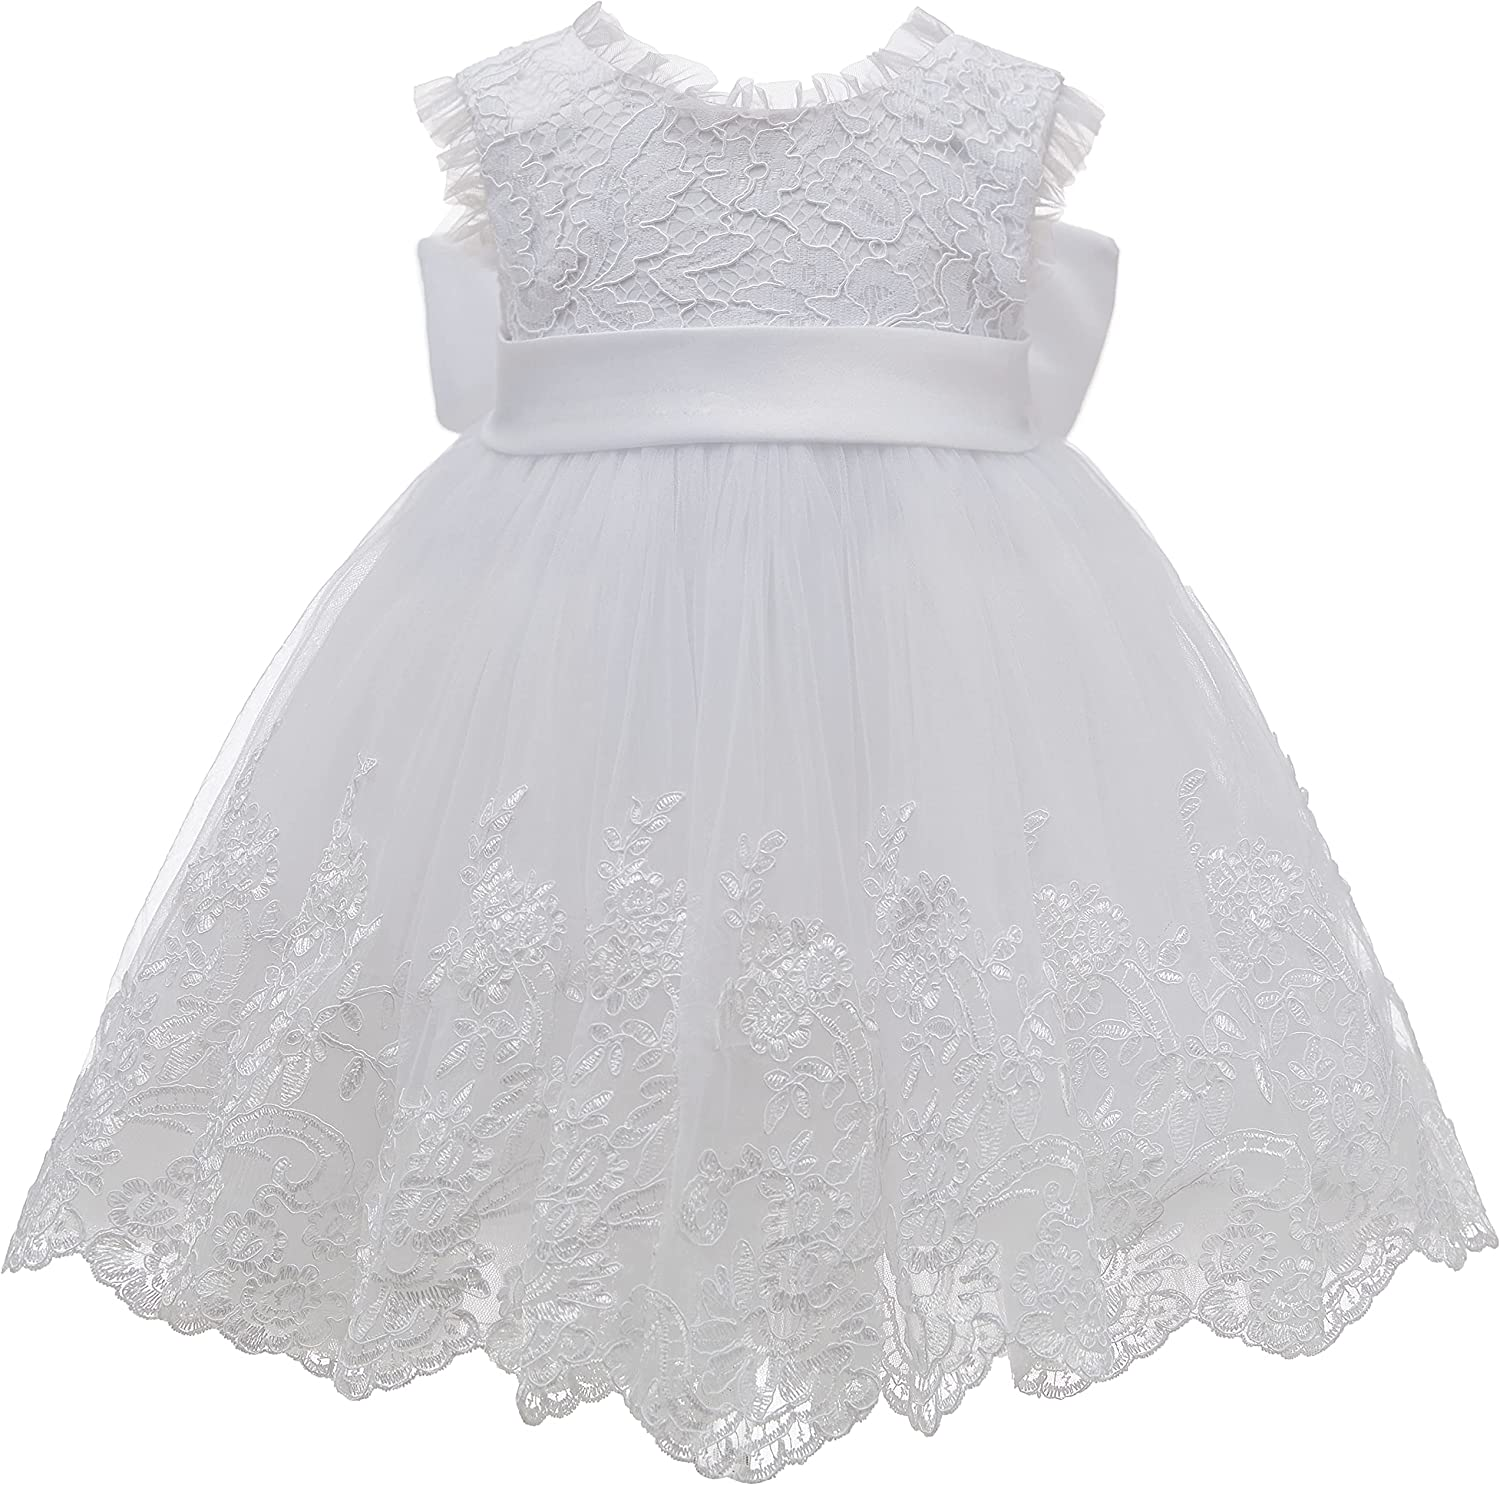 White Flower Girl Dresses Lace Bow Kids Princess Dress First Communion Dresses Birthday New Year